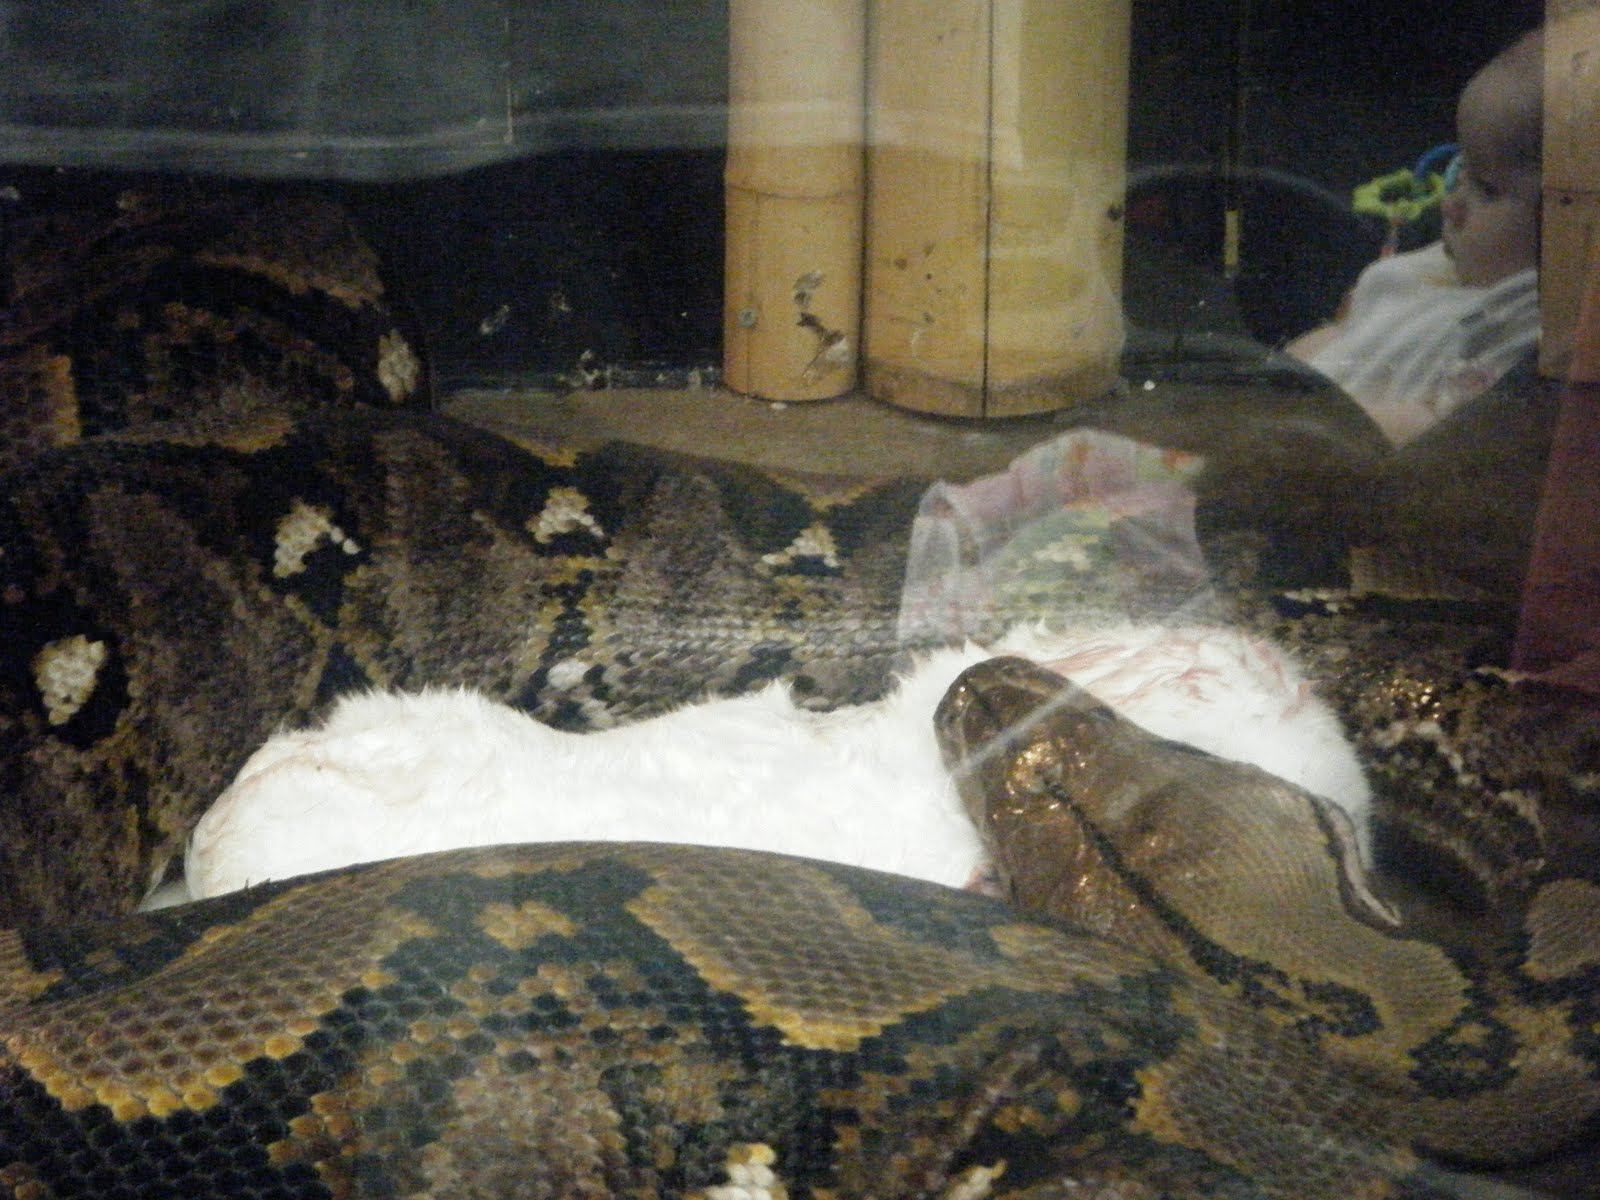 Giant Snakes Eating Humans Images & Pictures - Becuo